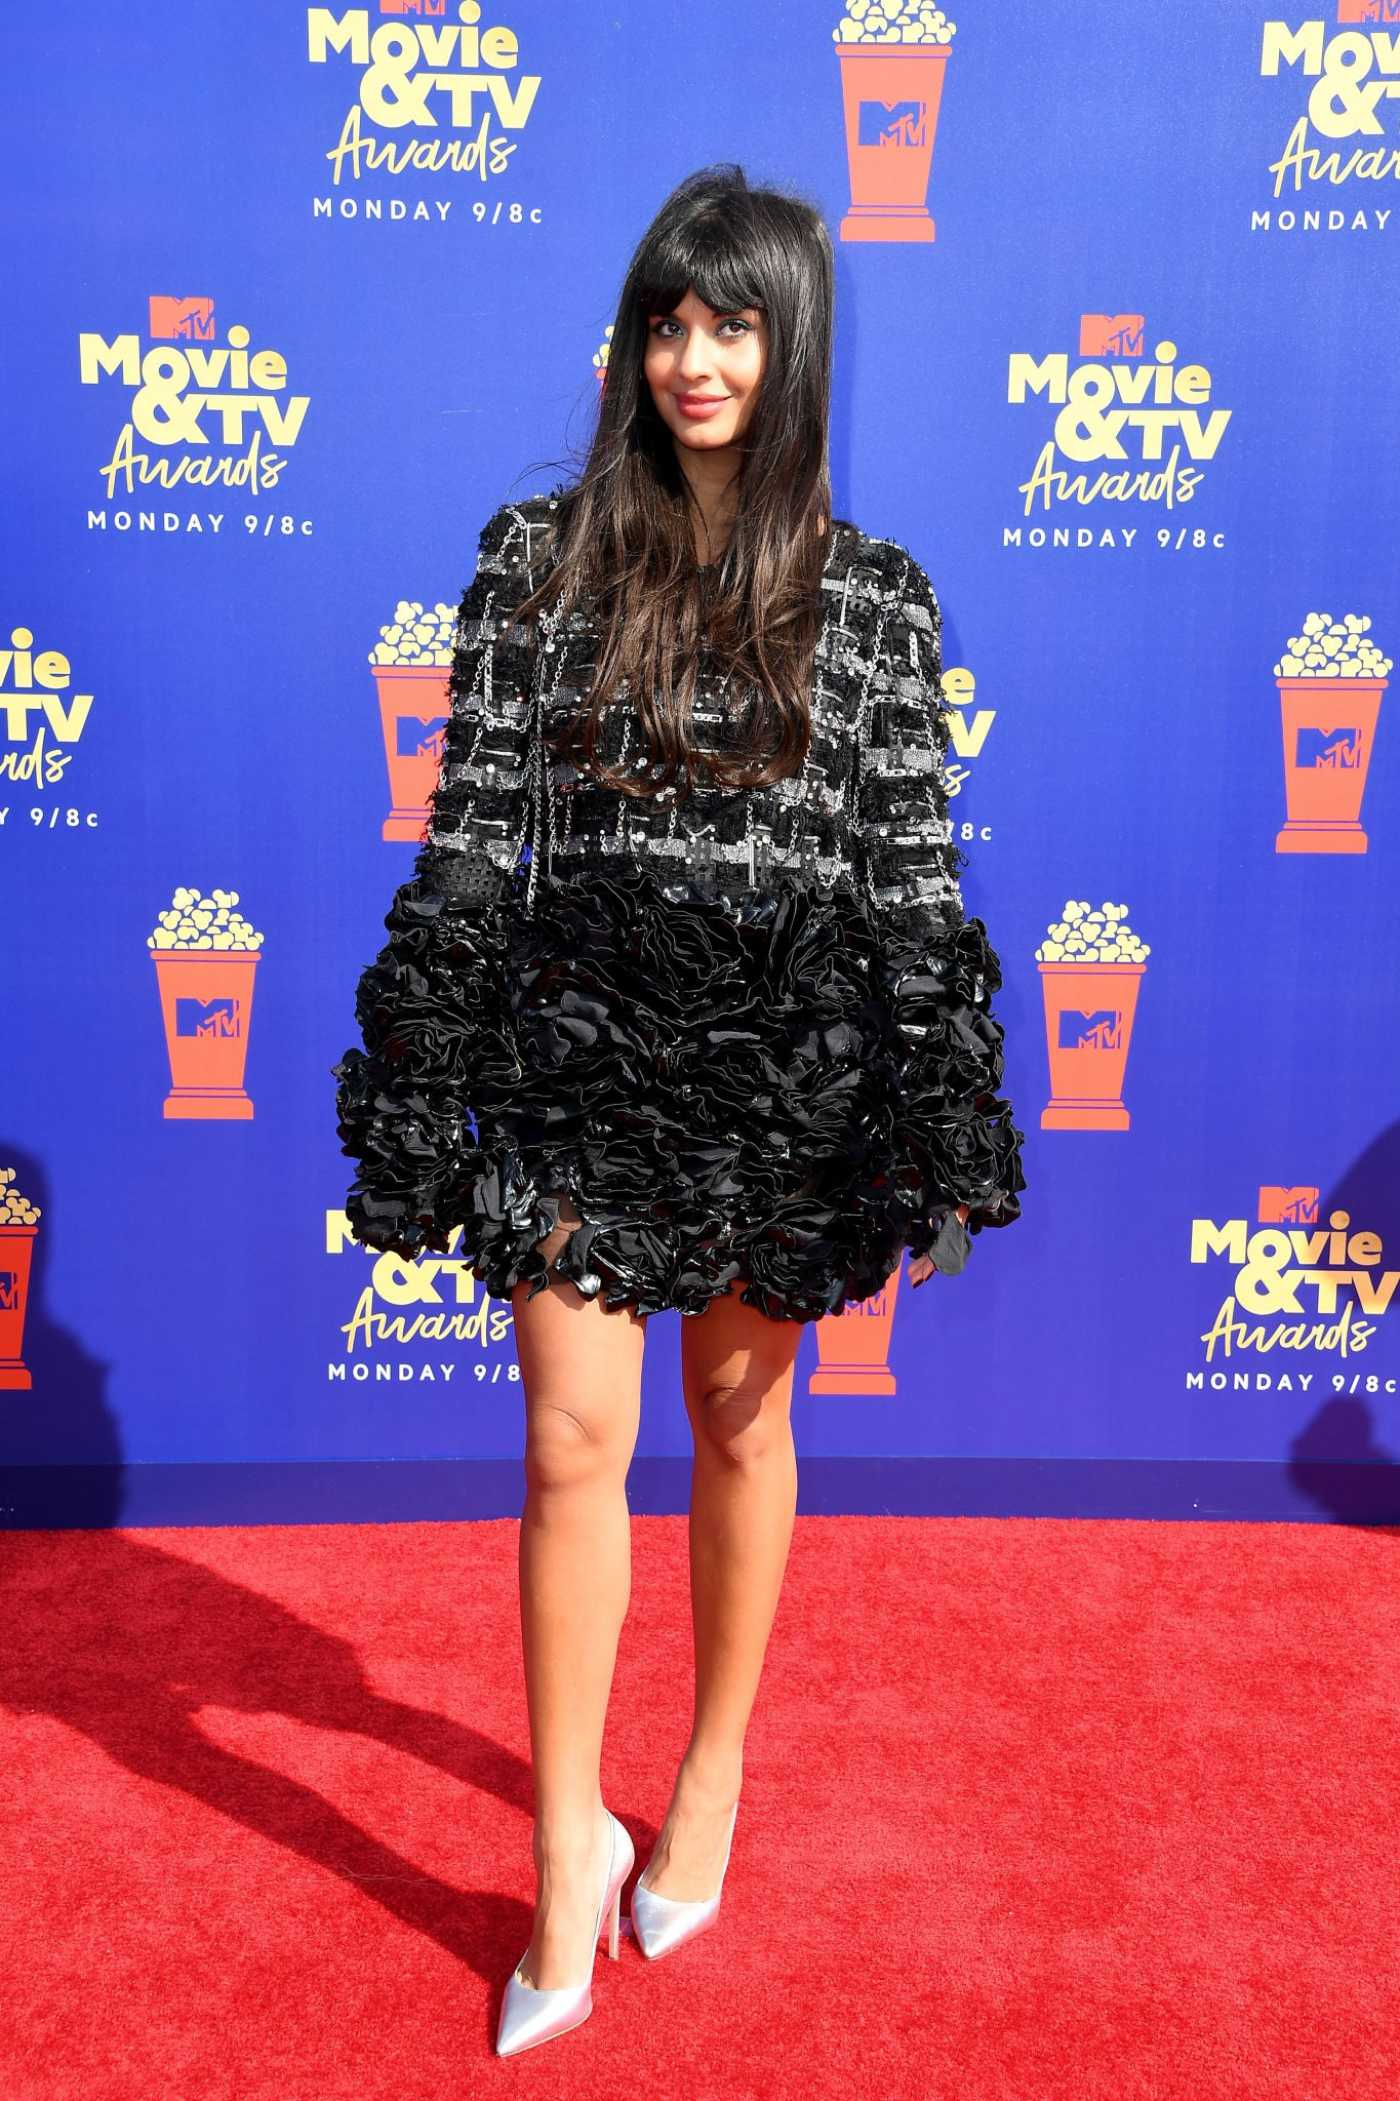 Jameela Jamil Attends 2019 MTV Movie and TV Awards at Barker Hangar in Santa Monica 06/15/2019